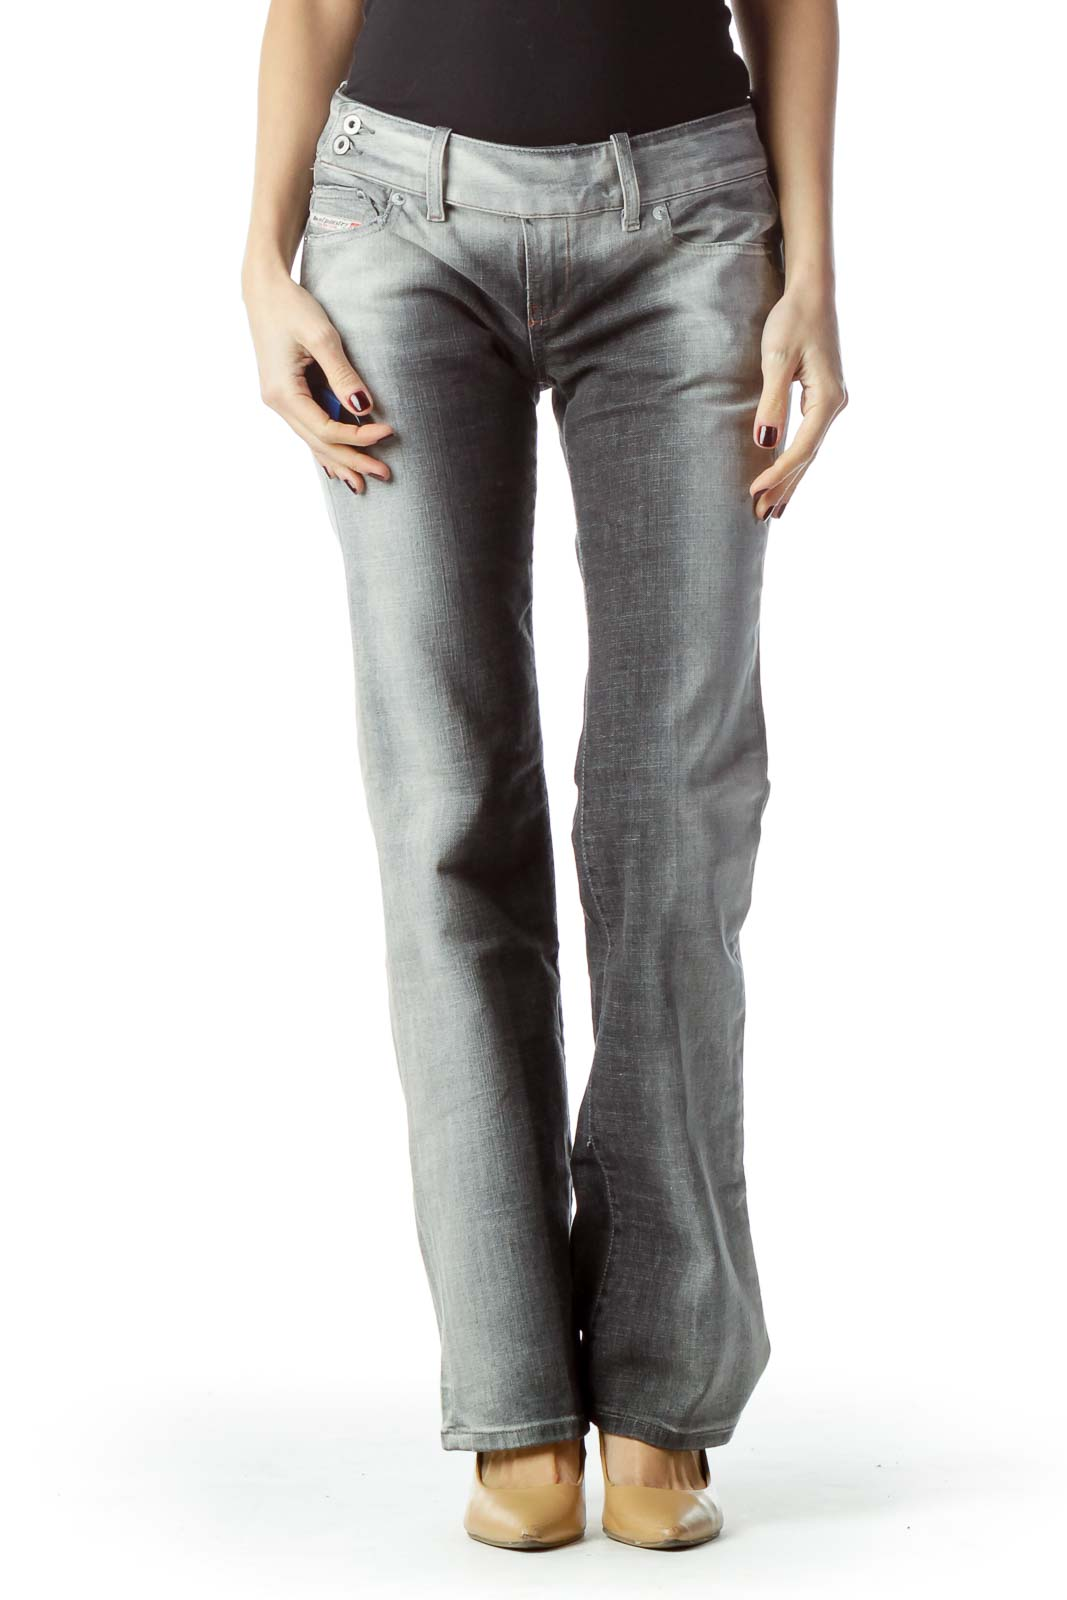 Two-Tone Gray Denim Jeans